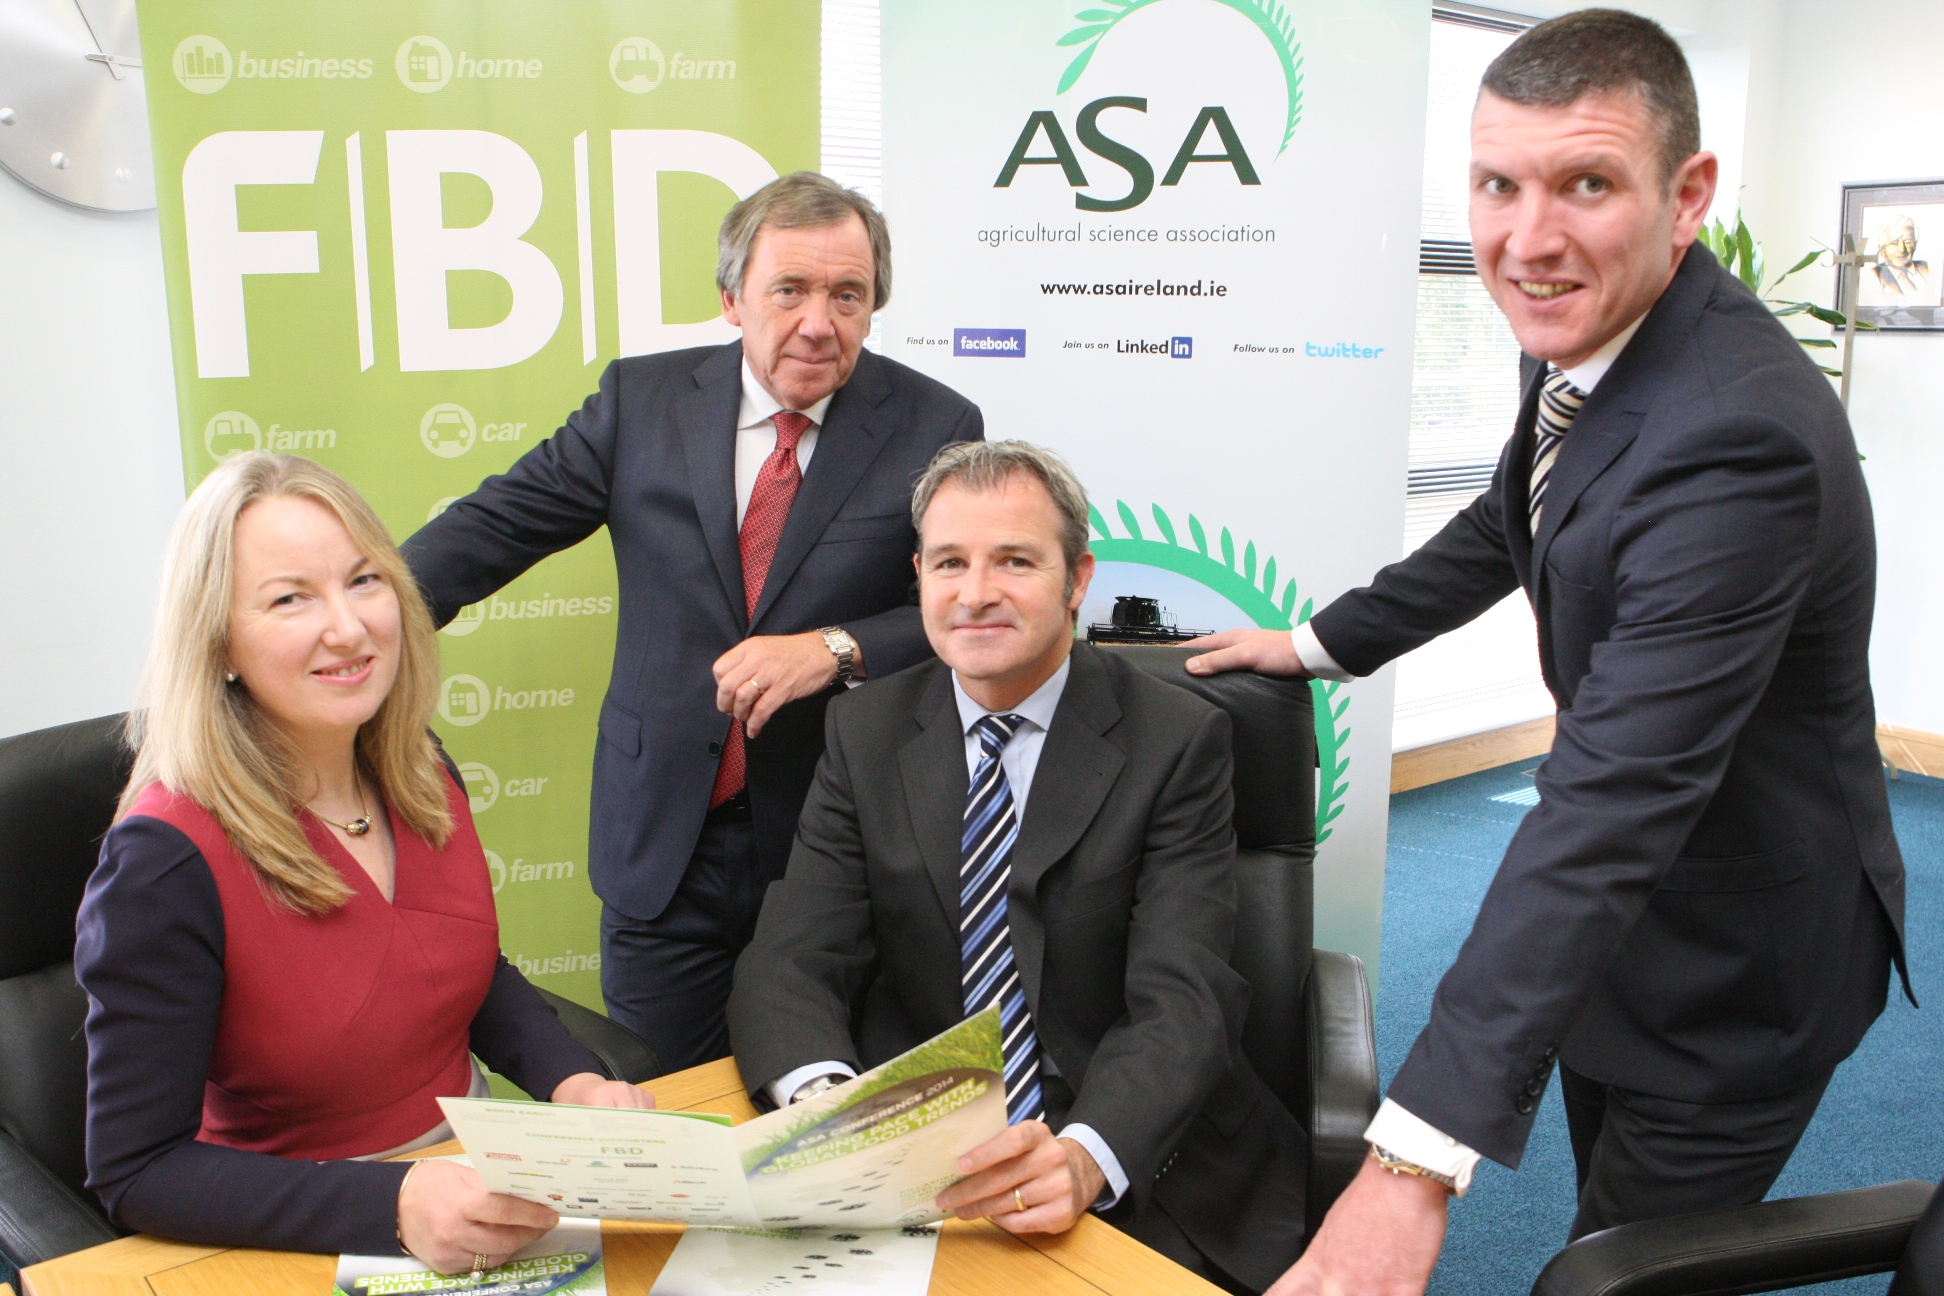 Announcing details of ASA Conference are: Siobhán Talbot, Managing Director Glanbia and Larry Murrin, Chief Executive Dawn Farm Foods, both conference speakers, with Andrew Langford, Chief Executive FBD, conference partner and Seán Farrell, ASA President.